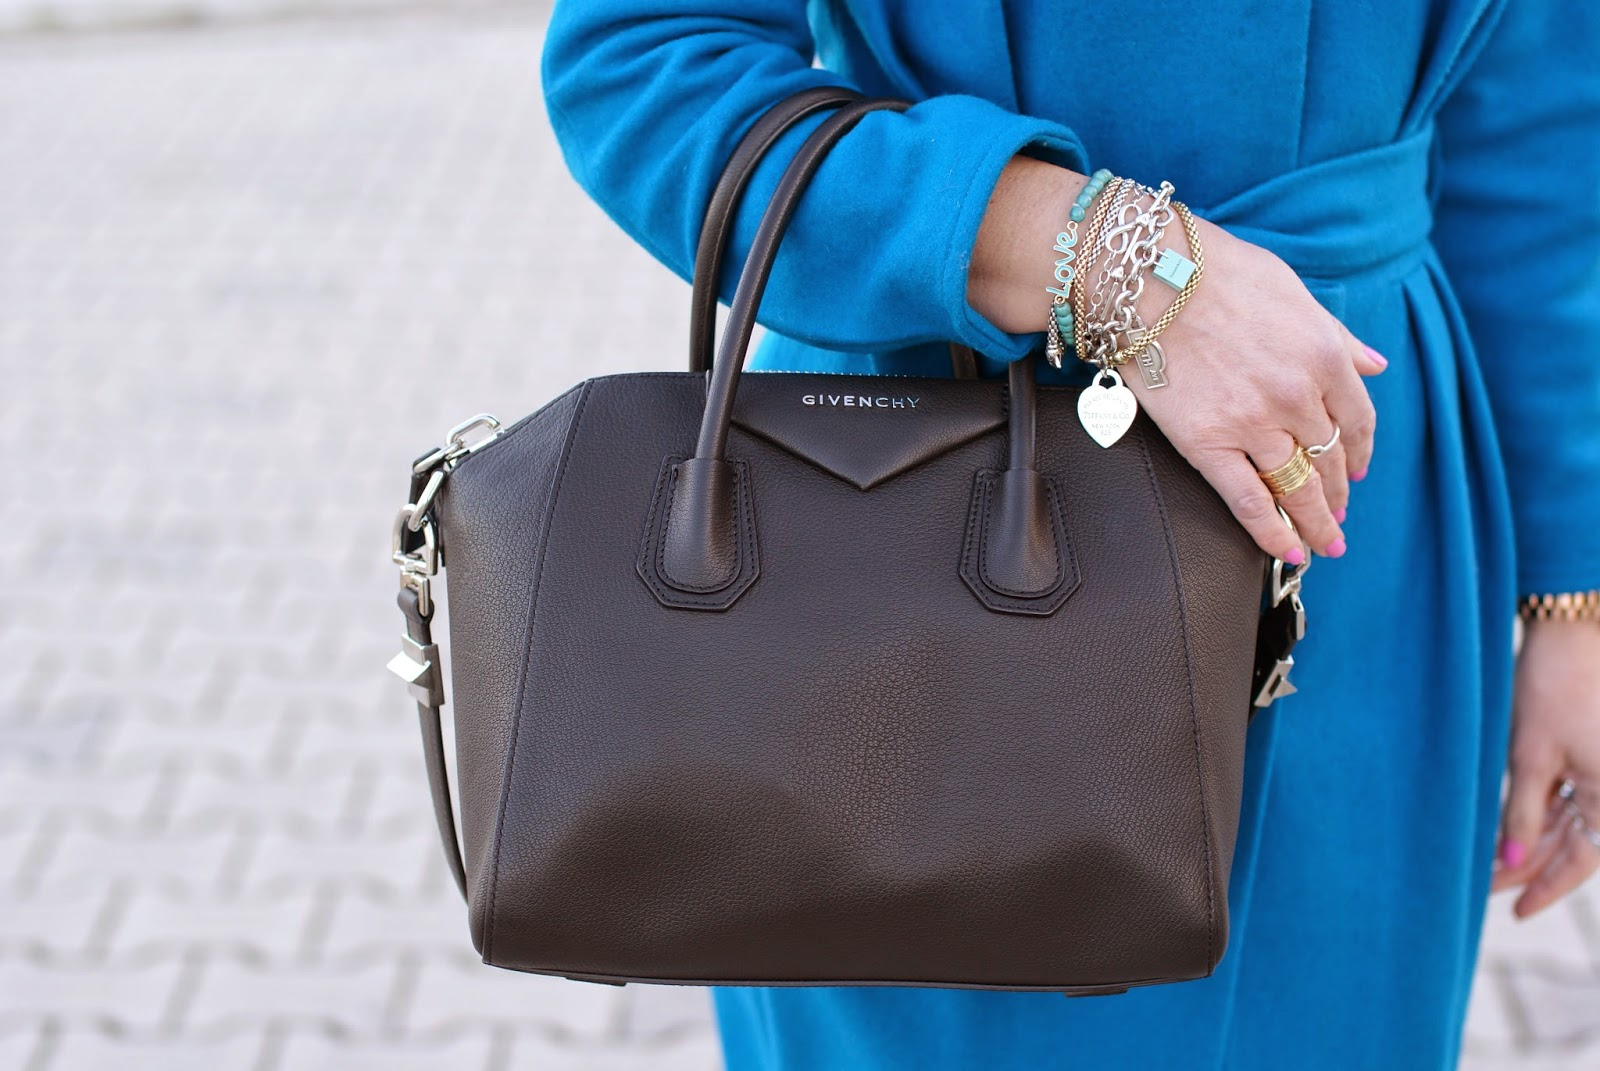 Givenchy Antigona bag, Antigona black small bag, Fashion and Cookies, fashion blogger